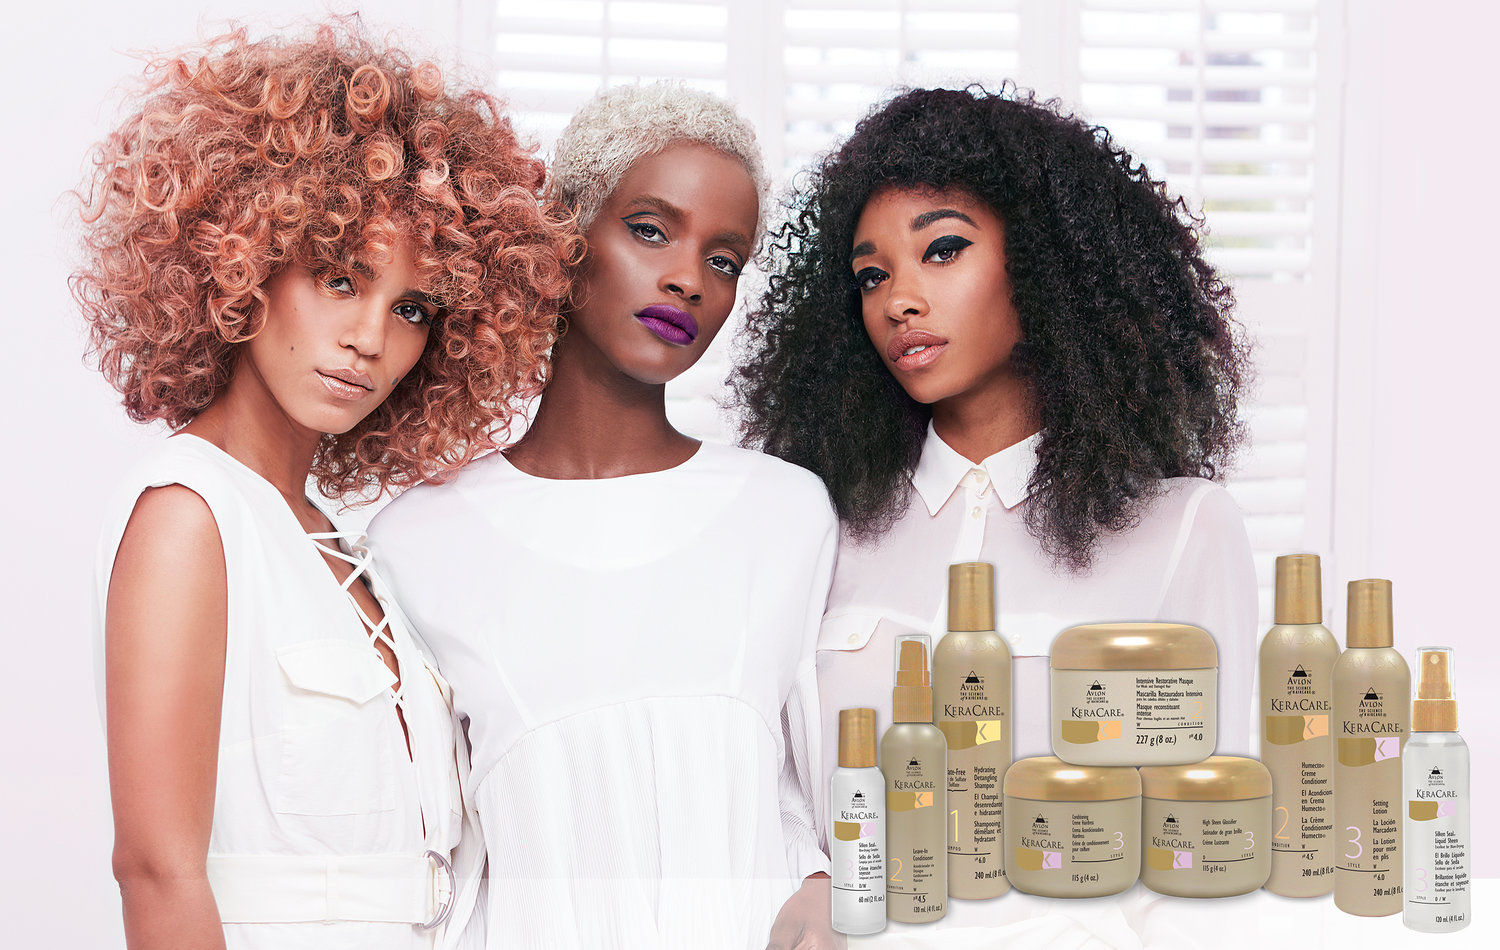 avlon-keracare b-sondrea's signature styles salon and spa-el paso-texas.jpg